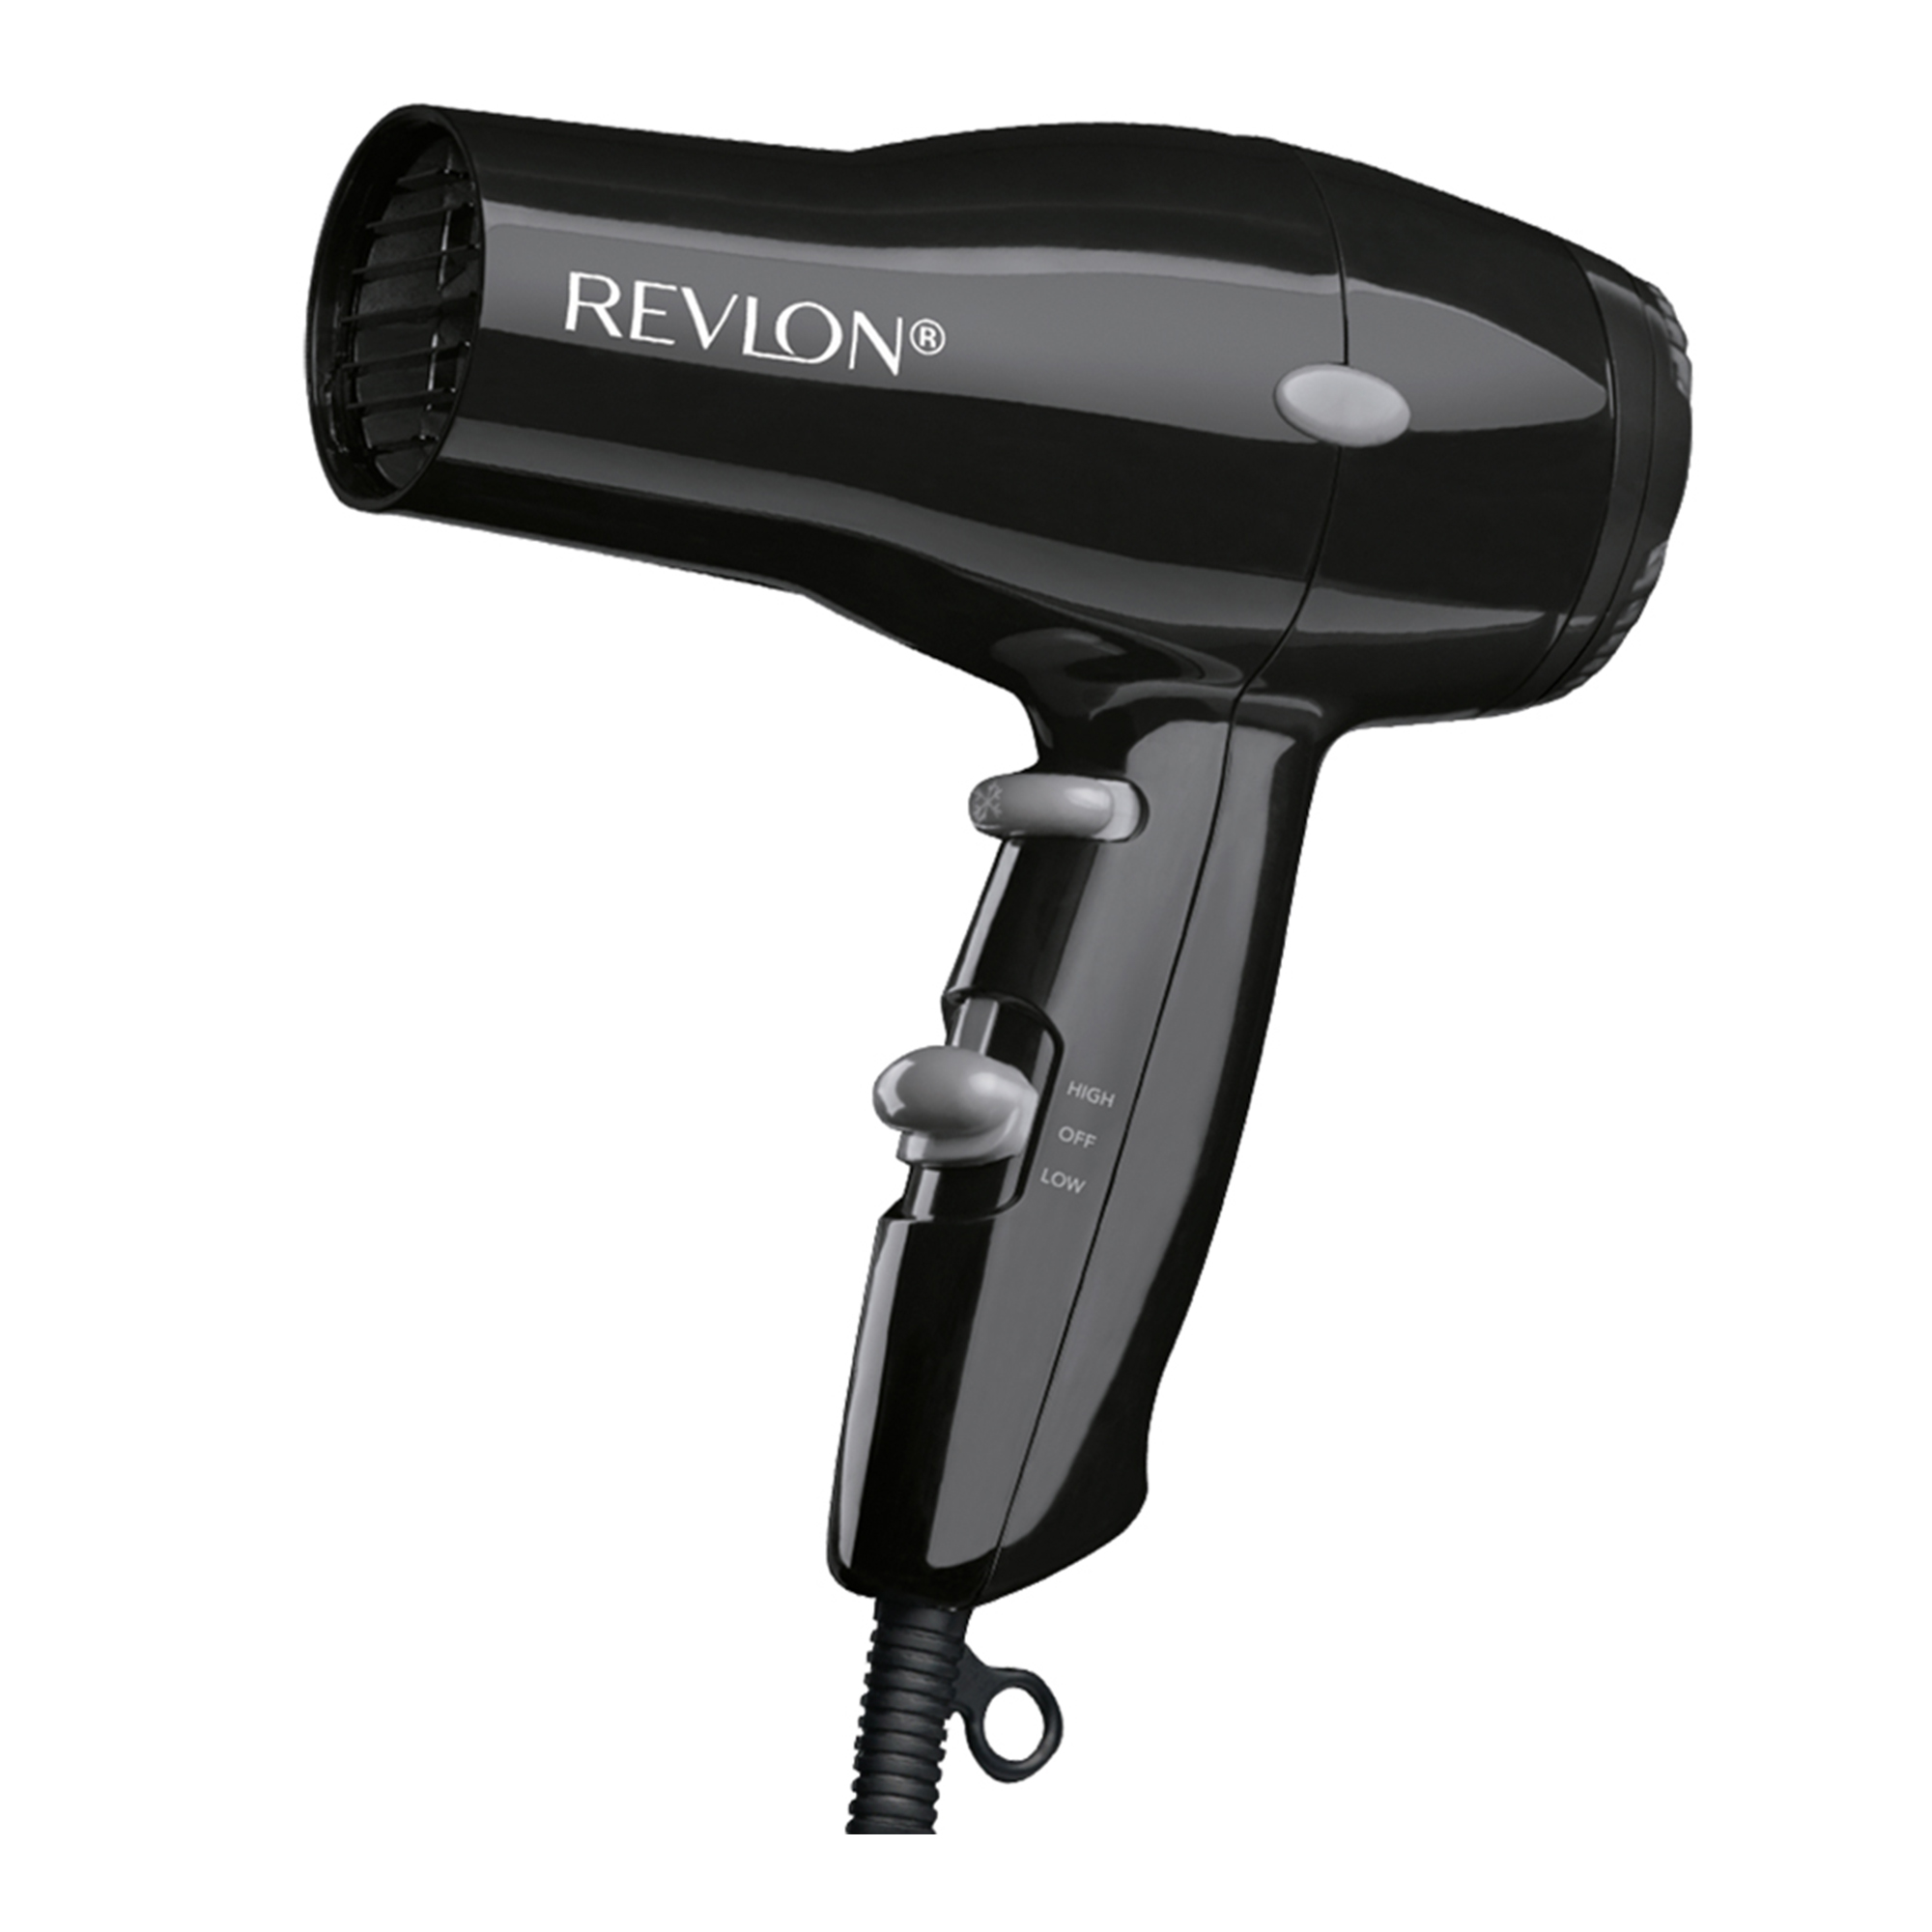 Revlon 1875w Compact Travel Hair Dryer Walmart Com